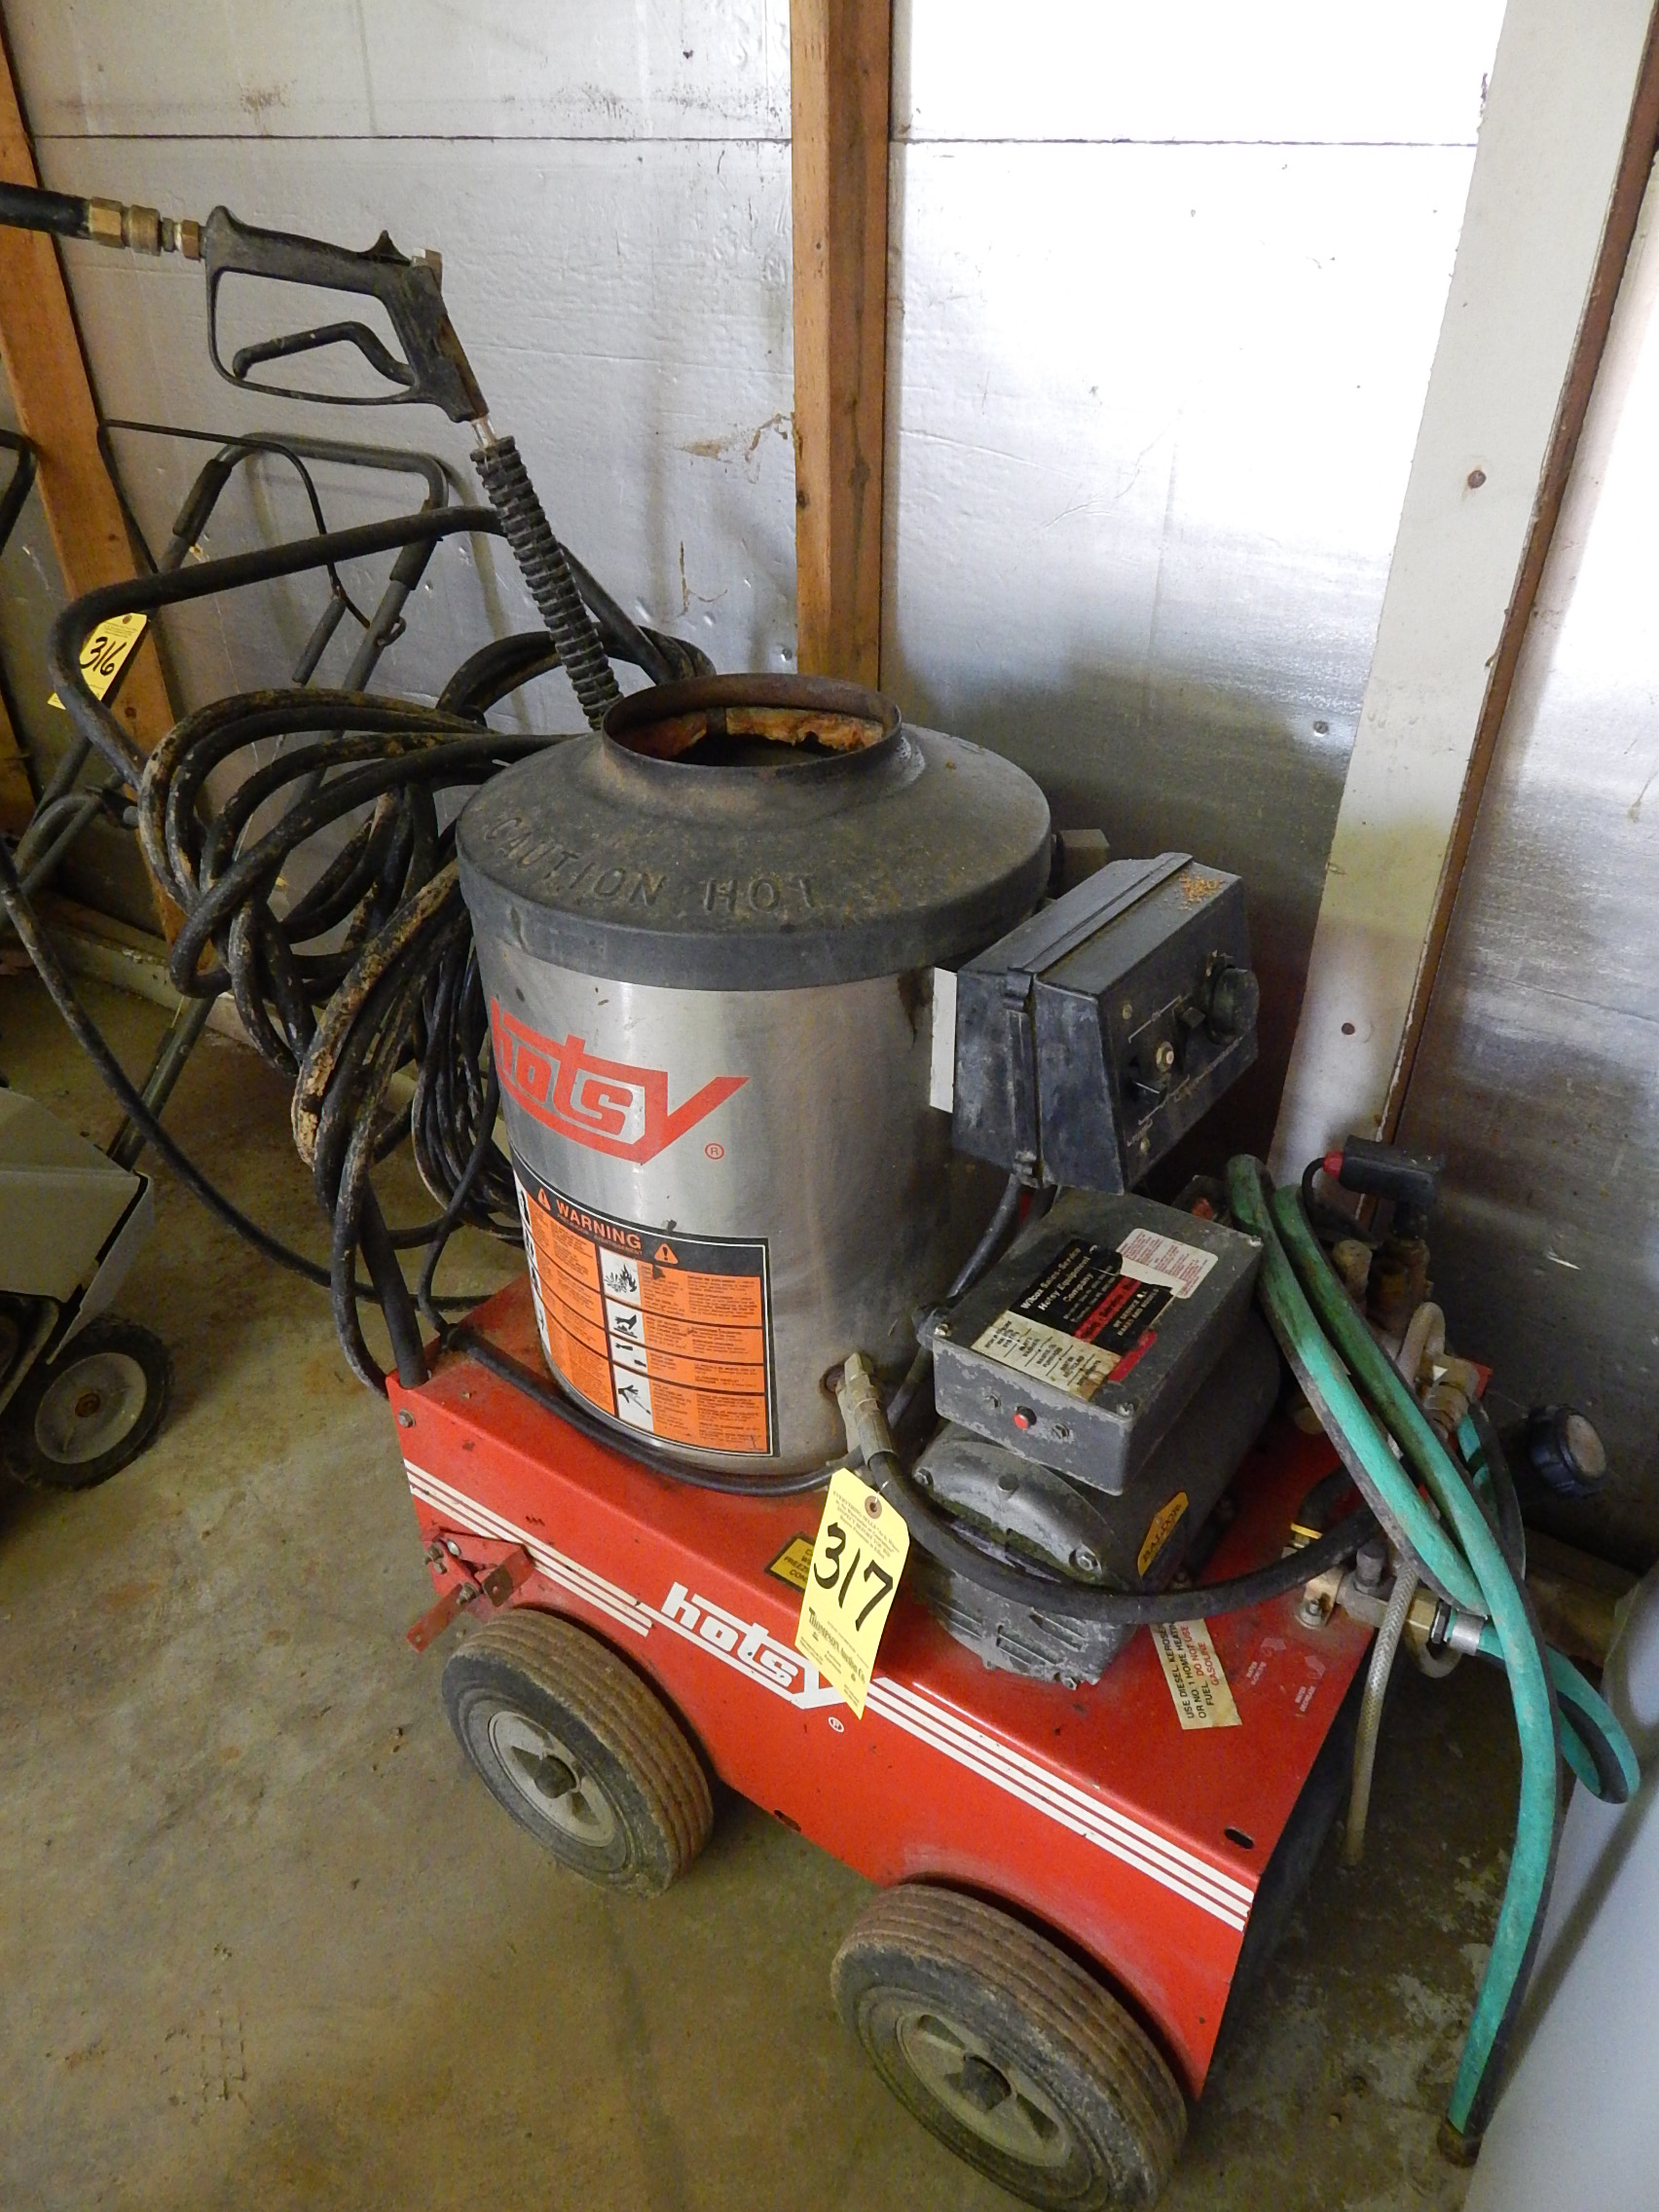 Hotsy Electric Pressure Washer For Sale Not Lossing Wiring Diagram Hot Water Diesel Kerosene Fuel Oil Rh Bidspotter Com Washers Commercial